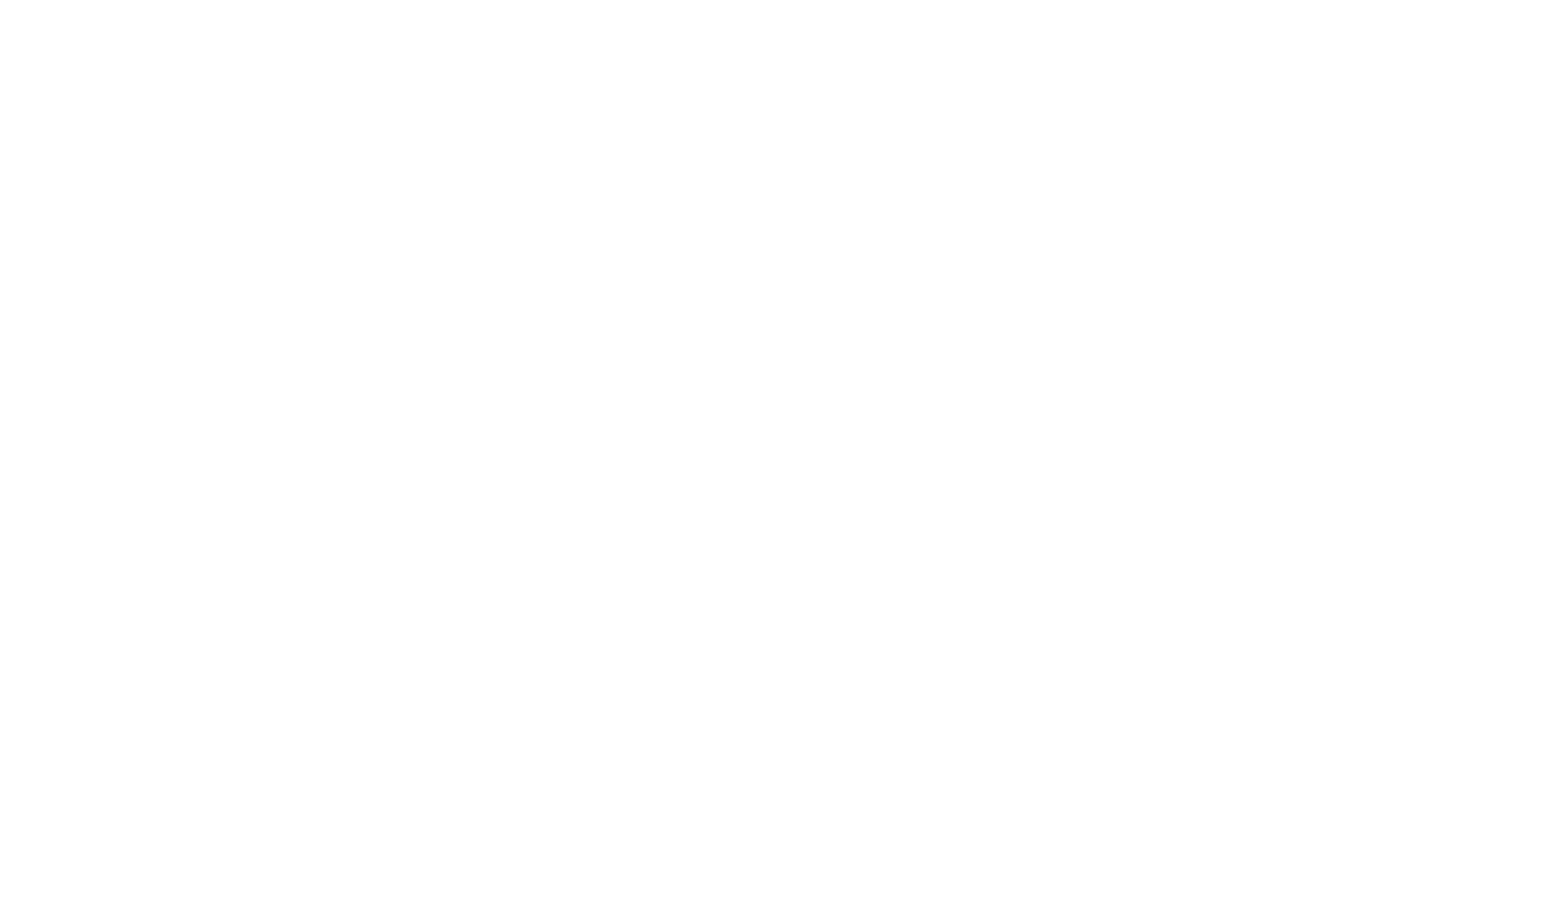 Bantrr by Steve Keifer